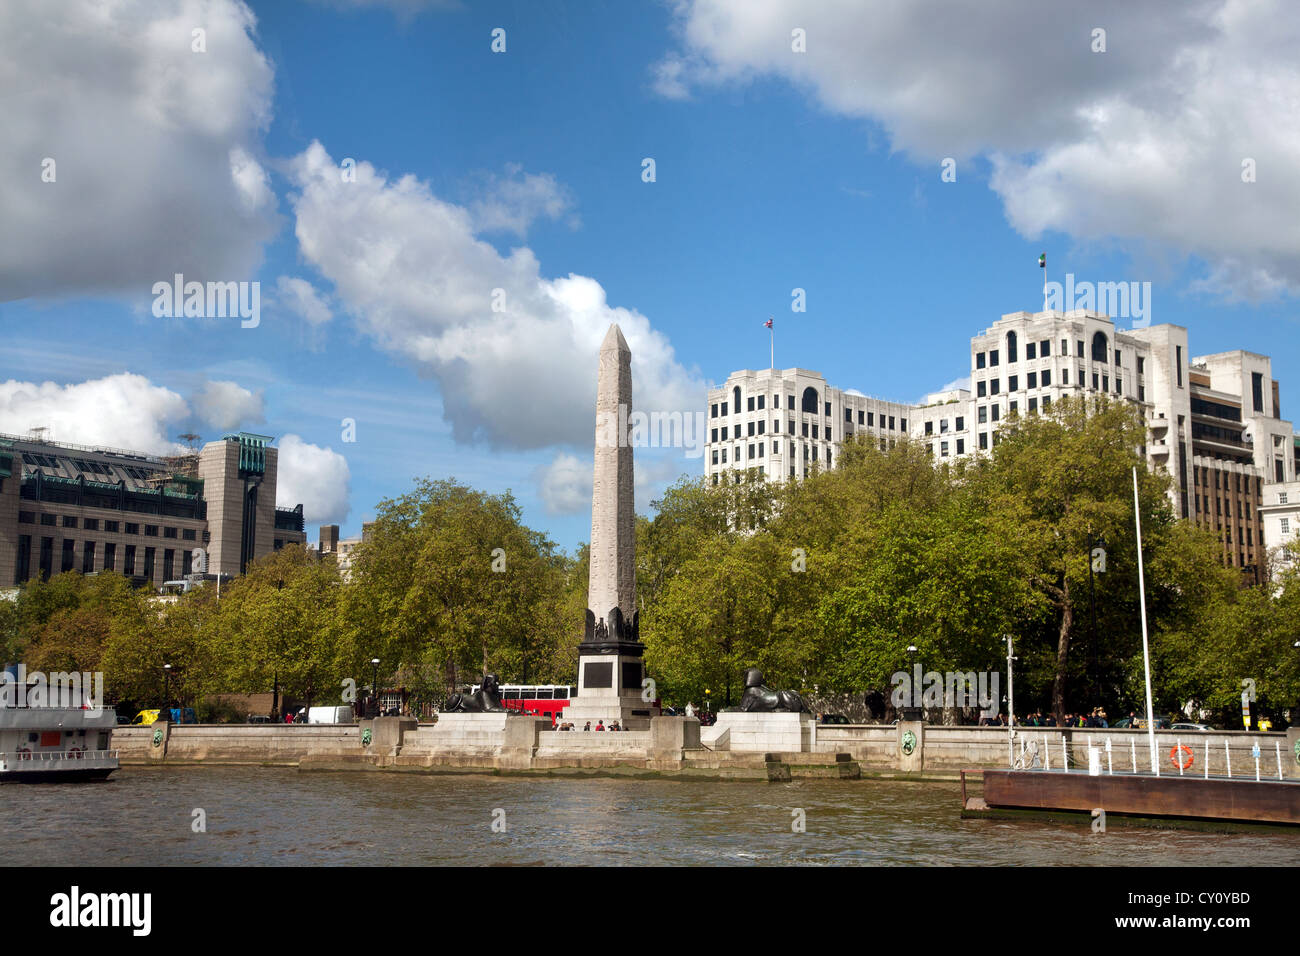 L'Angleterre. Londres. Tamise remblai. Westminster. Cleopatra's Needle. Photo Stock